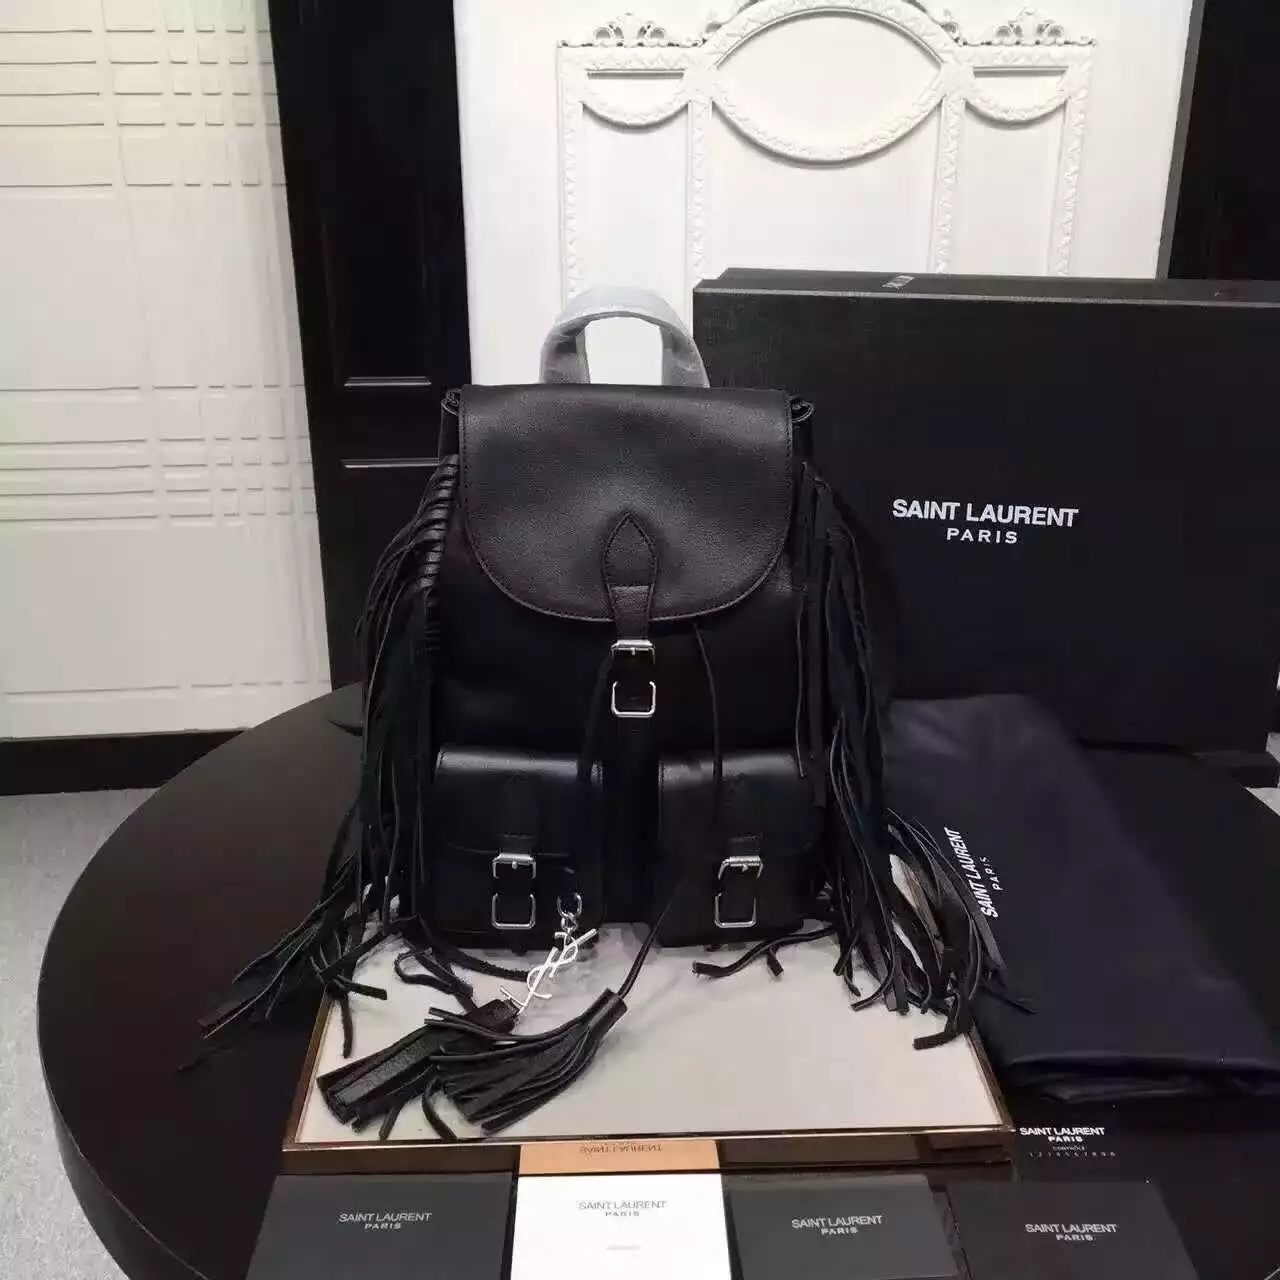 2016 Saint Laurent Bags Cheap Sale-Saint Laurent Small Festival Fringed Backpack in Black Leather